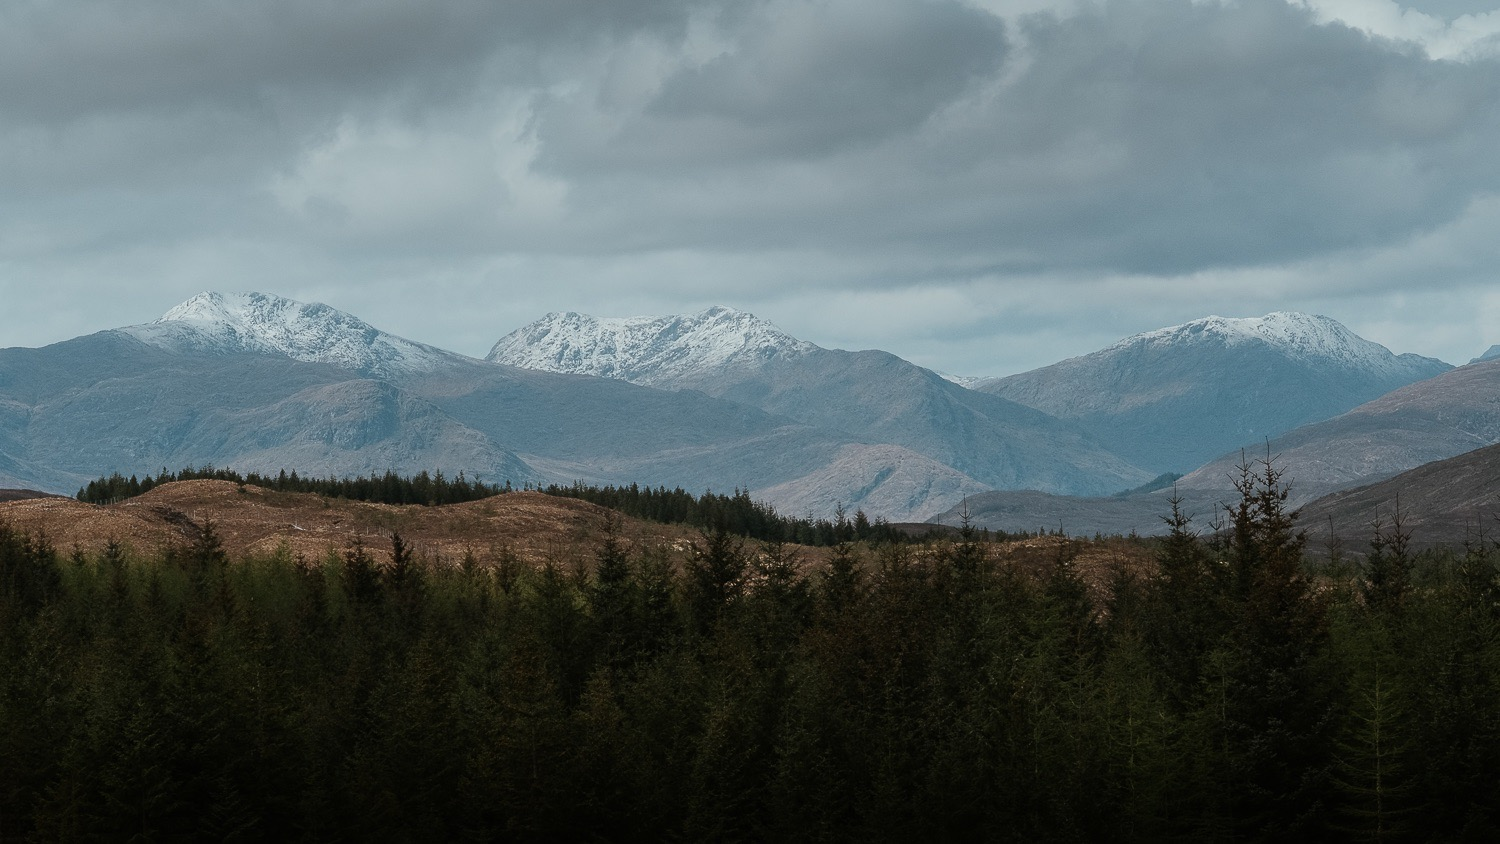 0037-scotland-tamron-le monde de la photo-paysage-20190509113346-compress.jpg